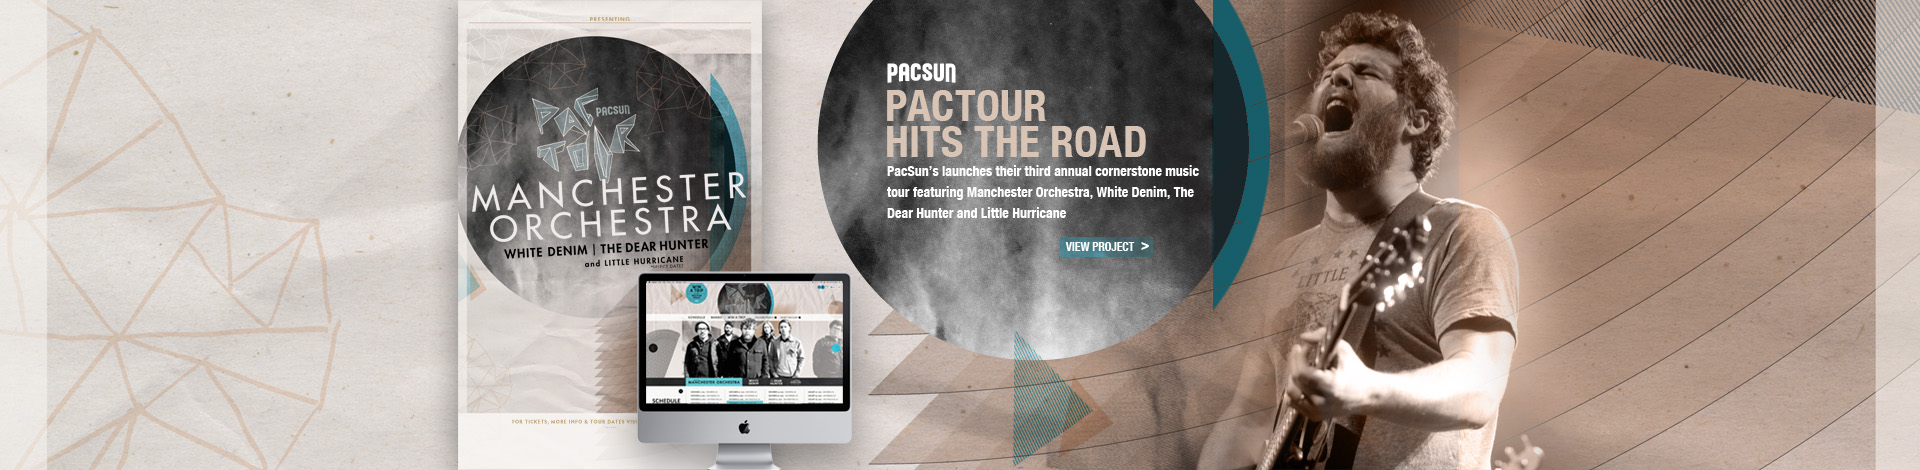 1-pactour_feature